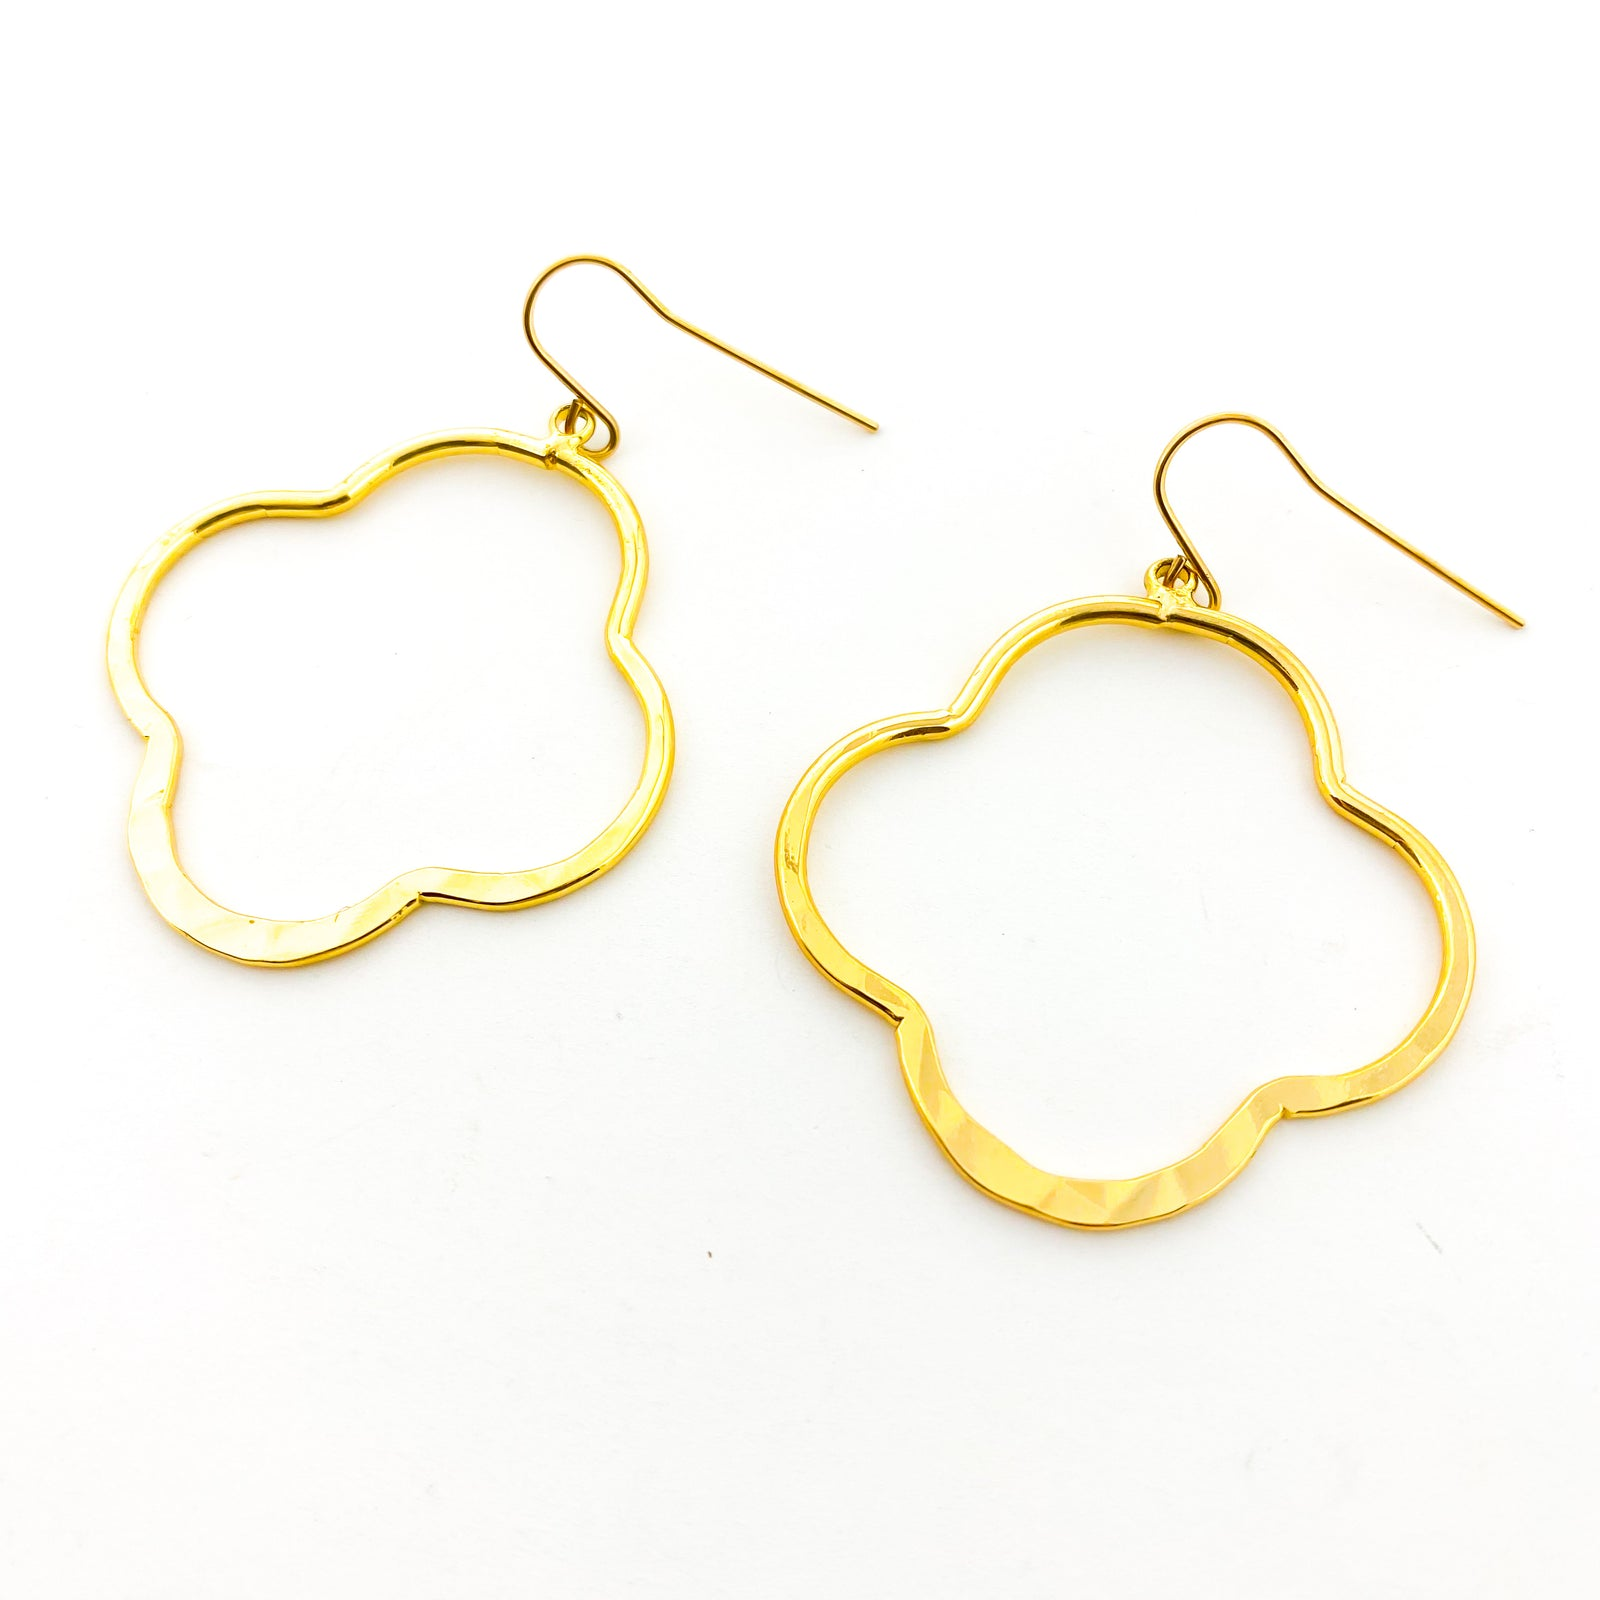 HAMMERED VAN CLEEF EARRINGS | 18K GOLD PLATED | SIZE OPTIONS